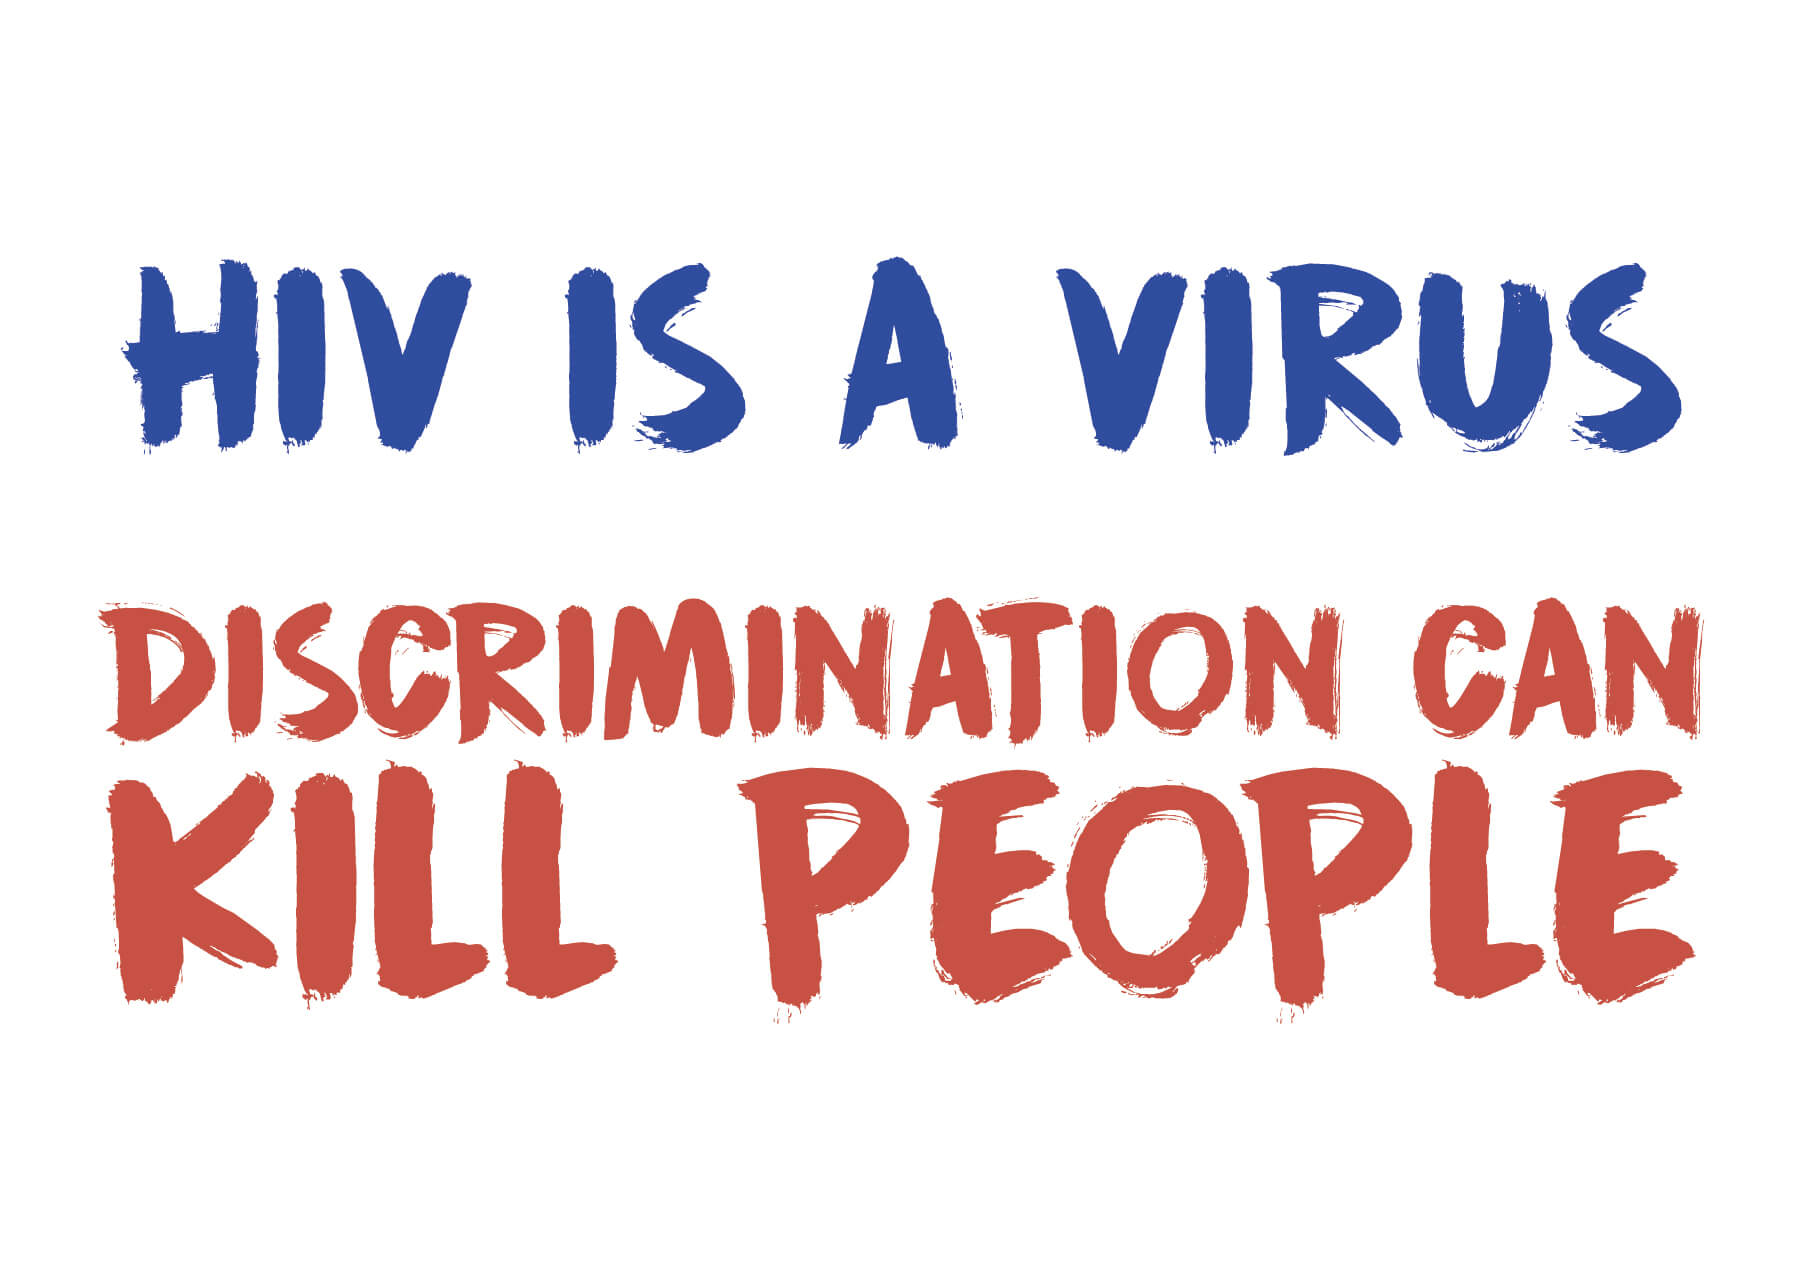 HIV is a virus discrimination can kill people